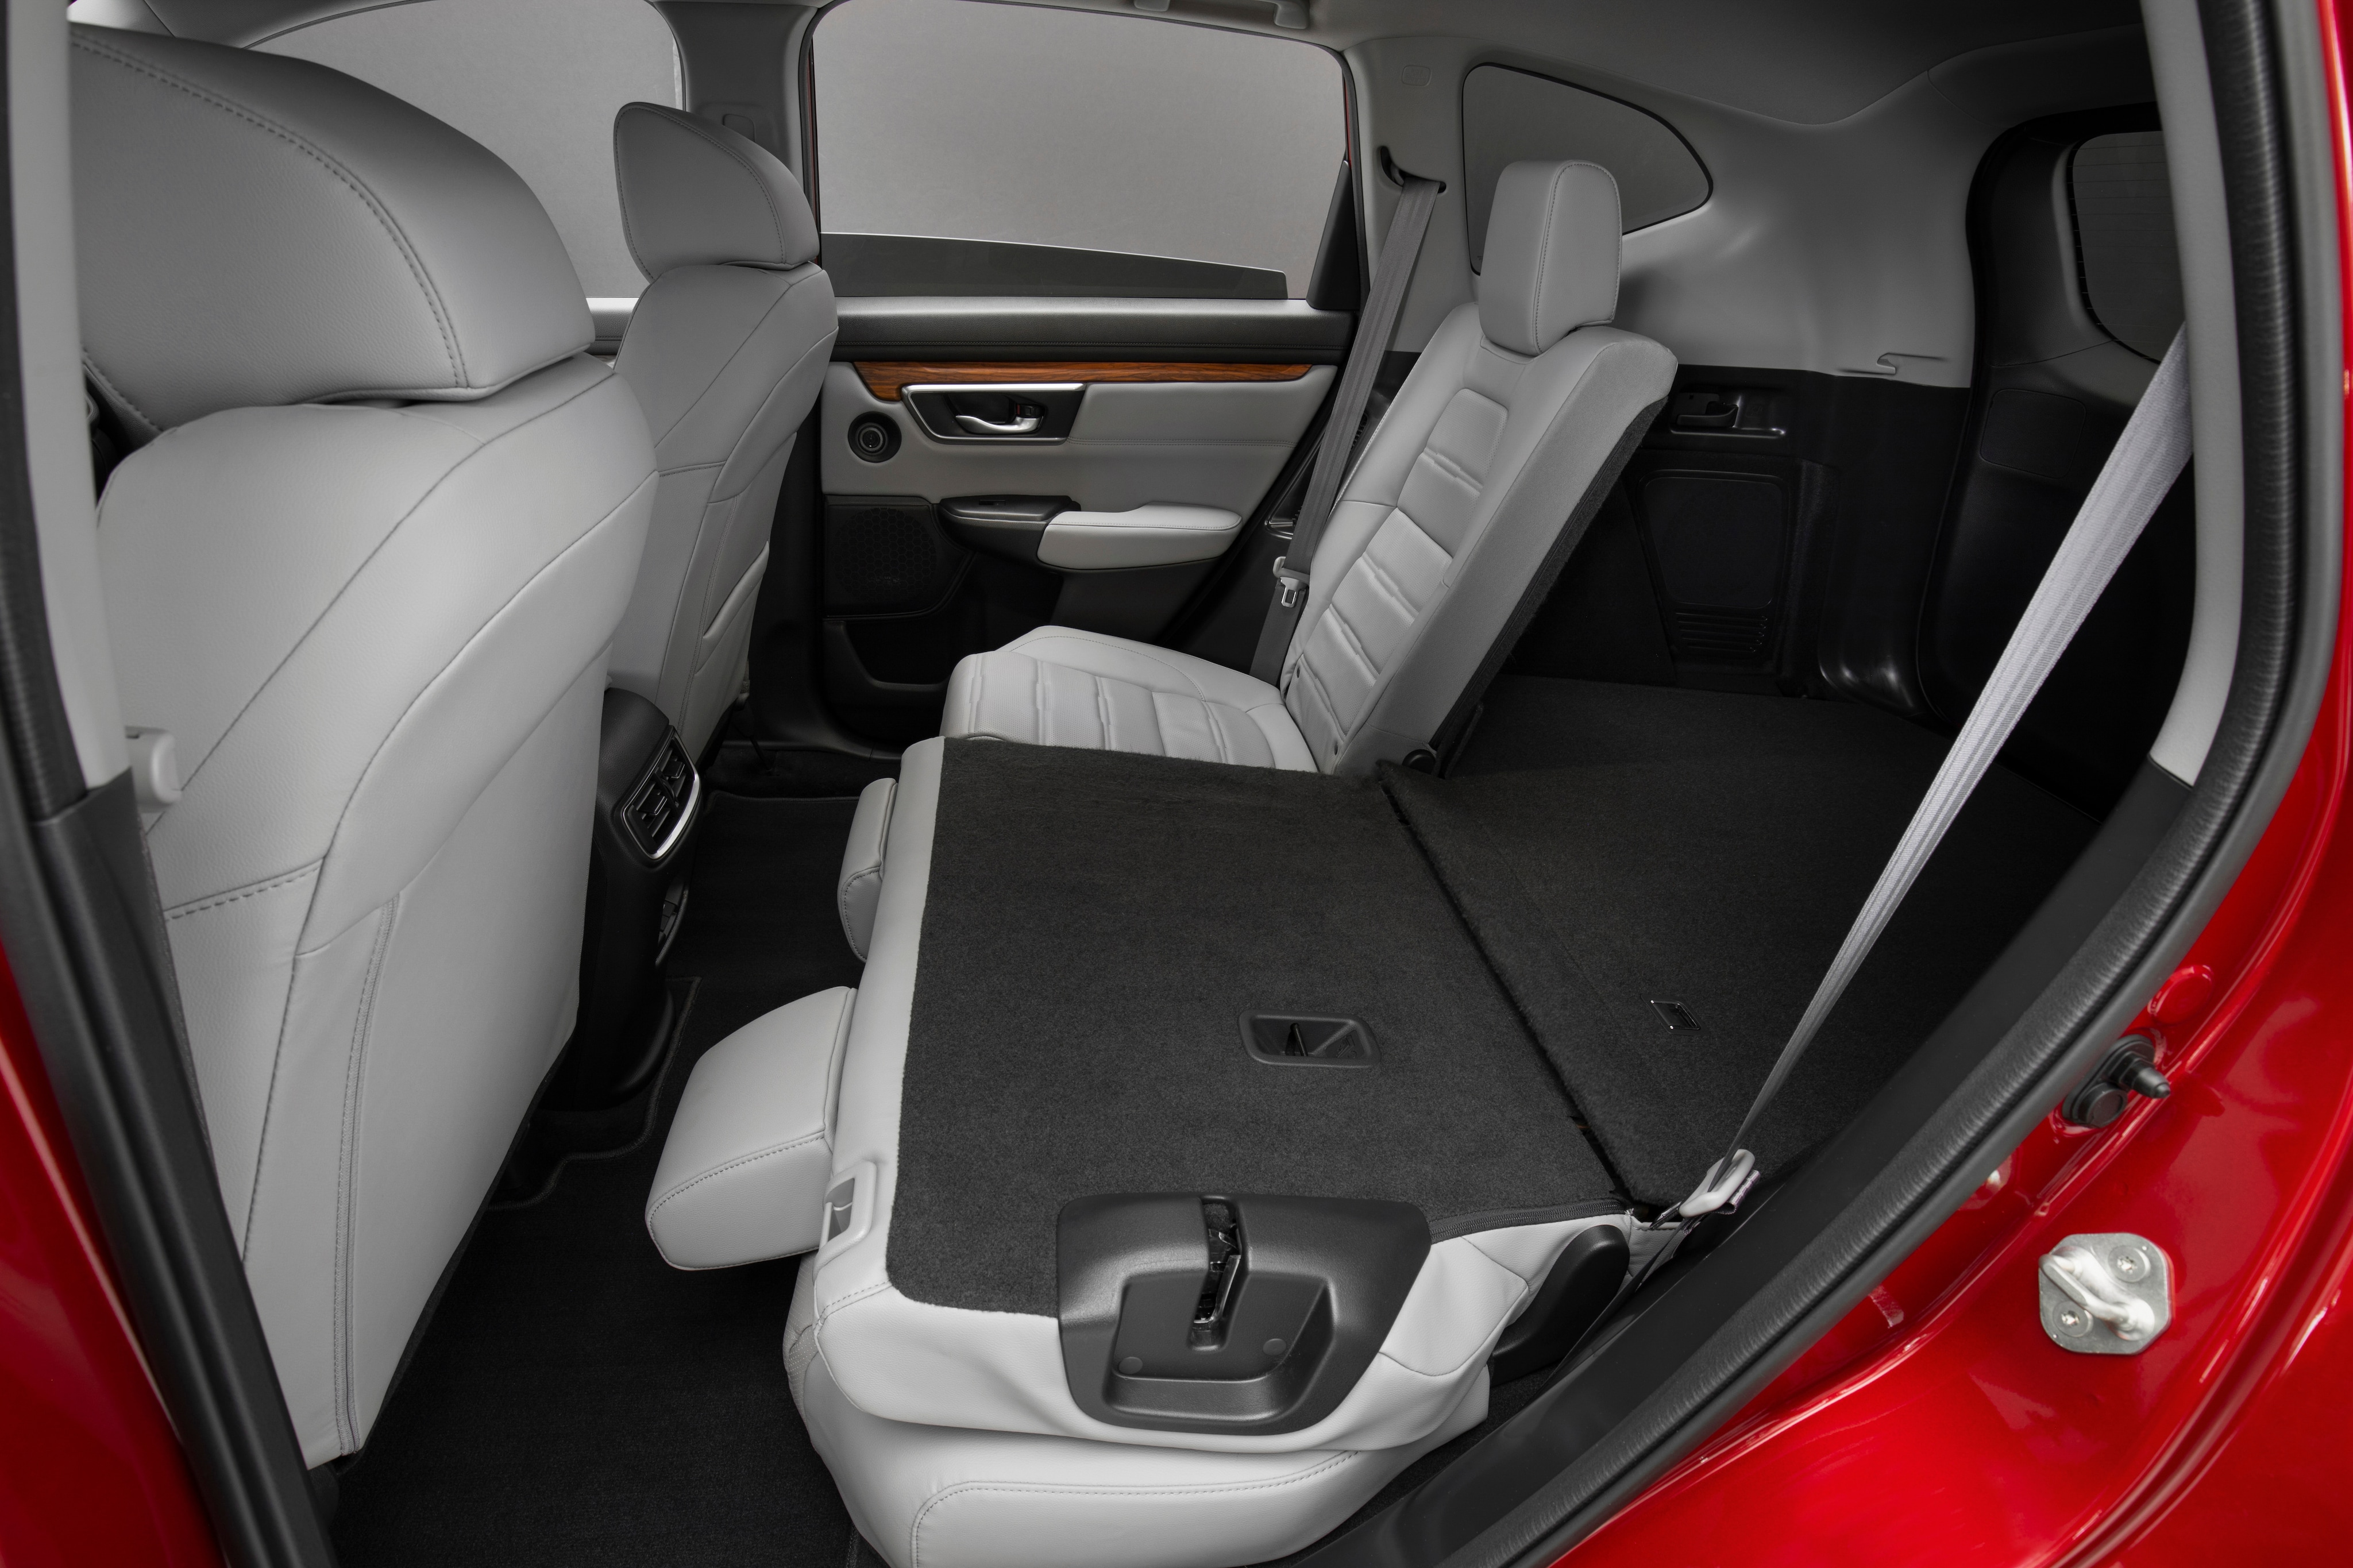 2020 Honda CR-V Hybrid Rear Seat